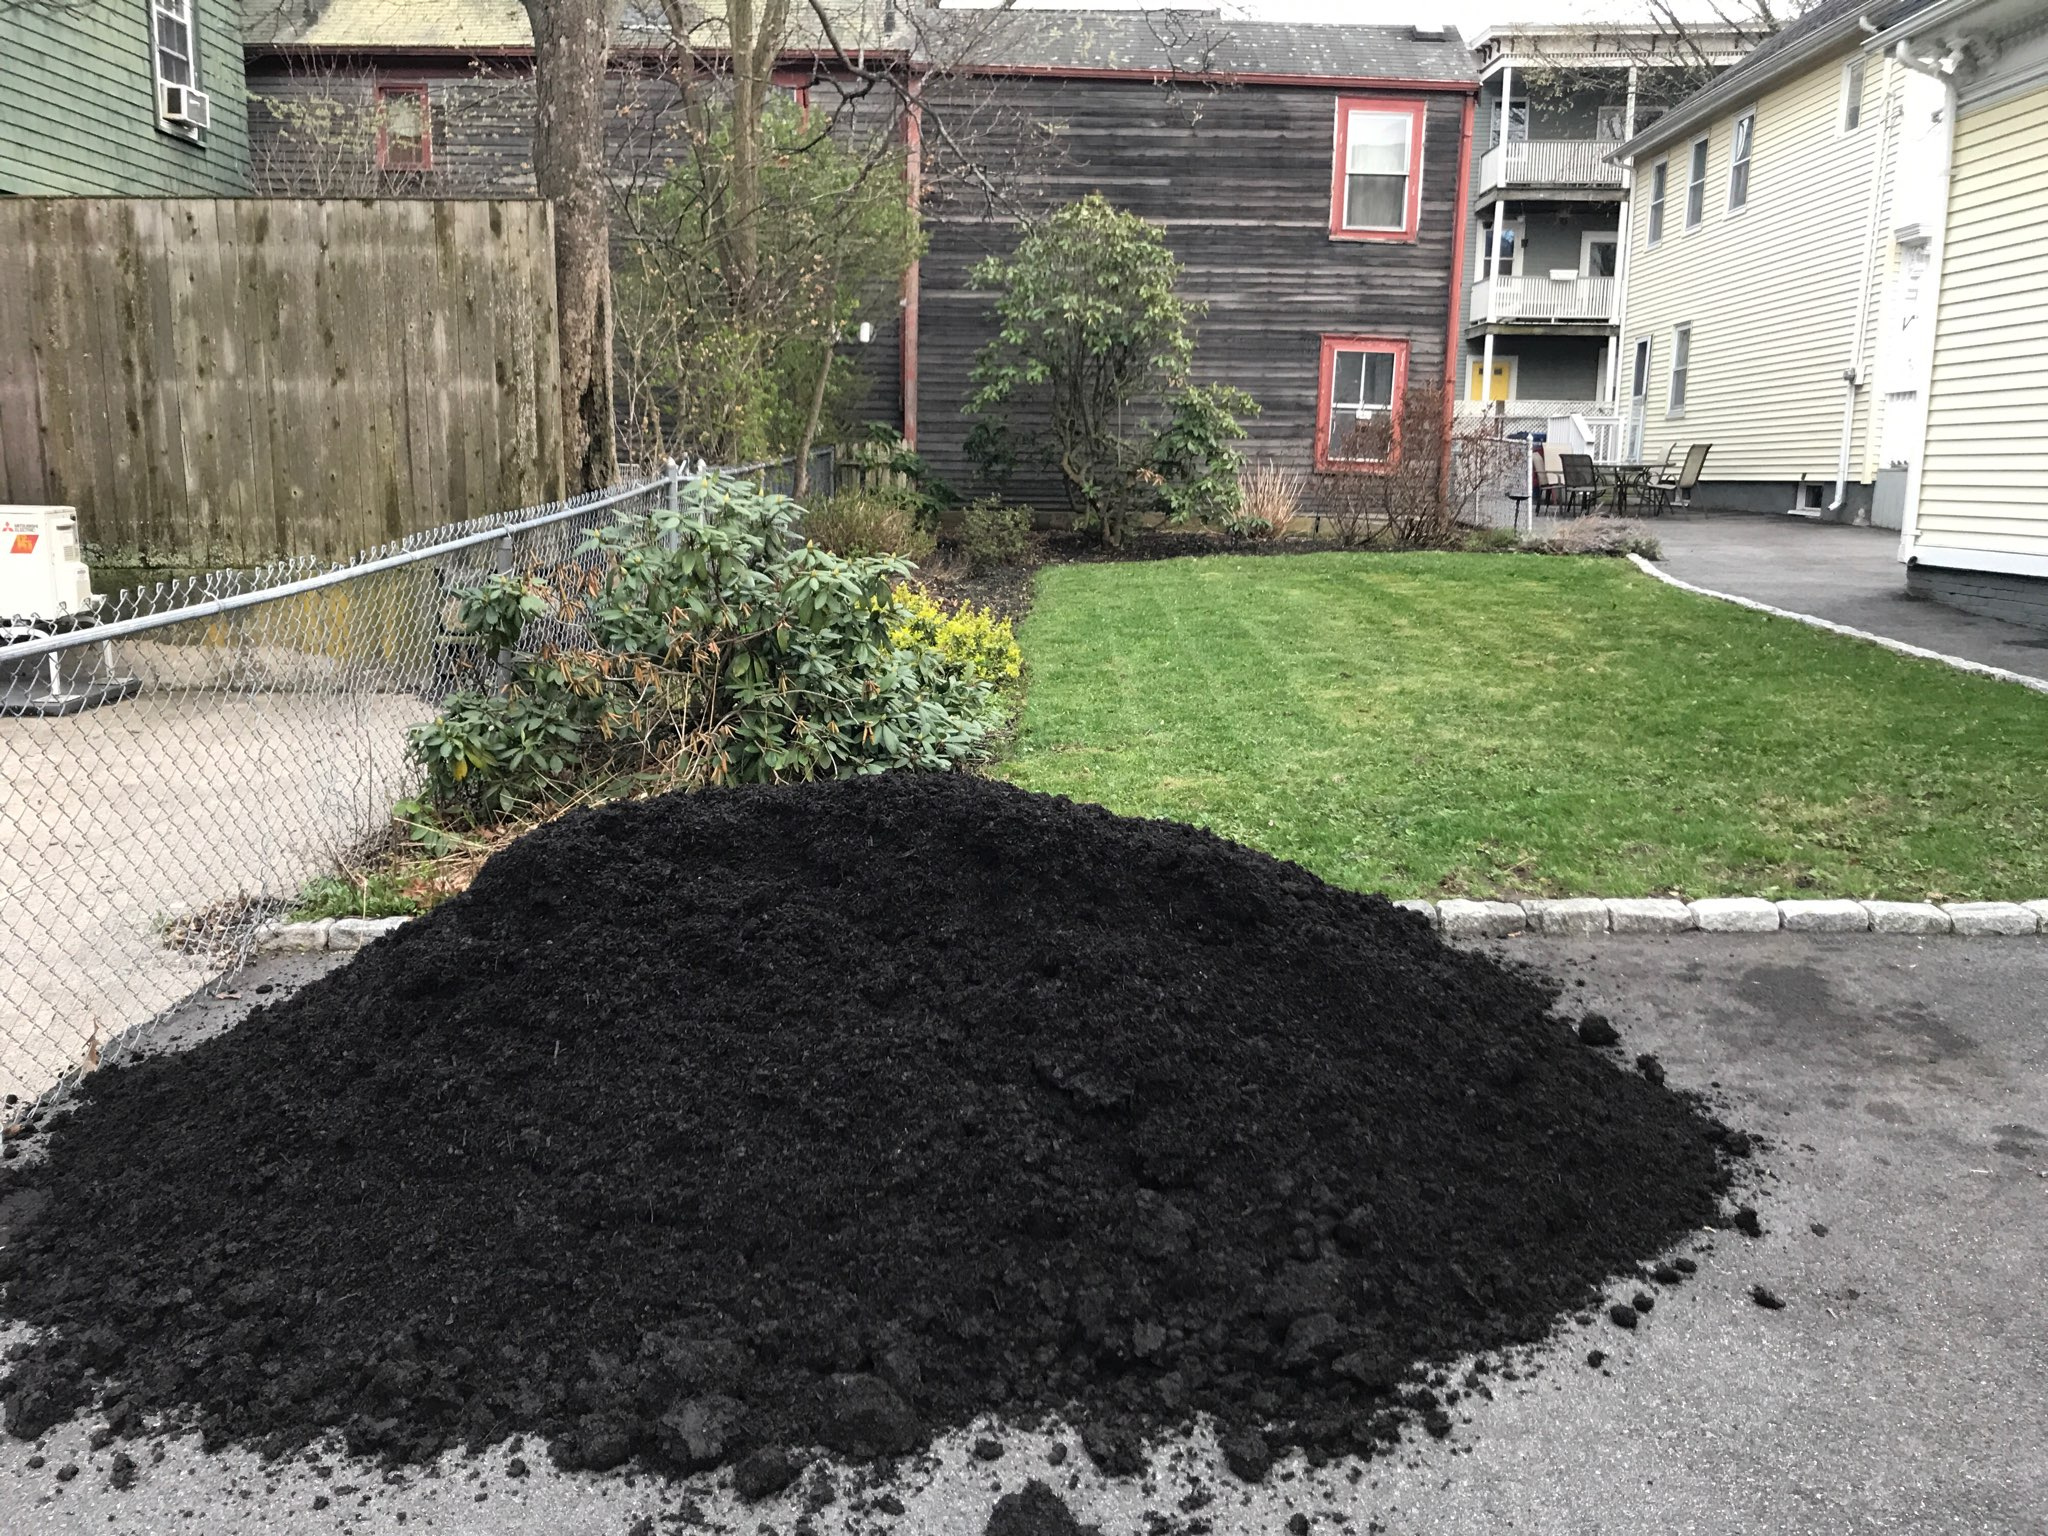 Black Earth Compost | Black Earth Compost